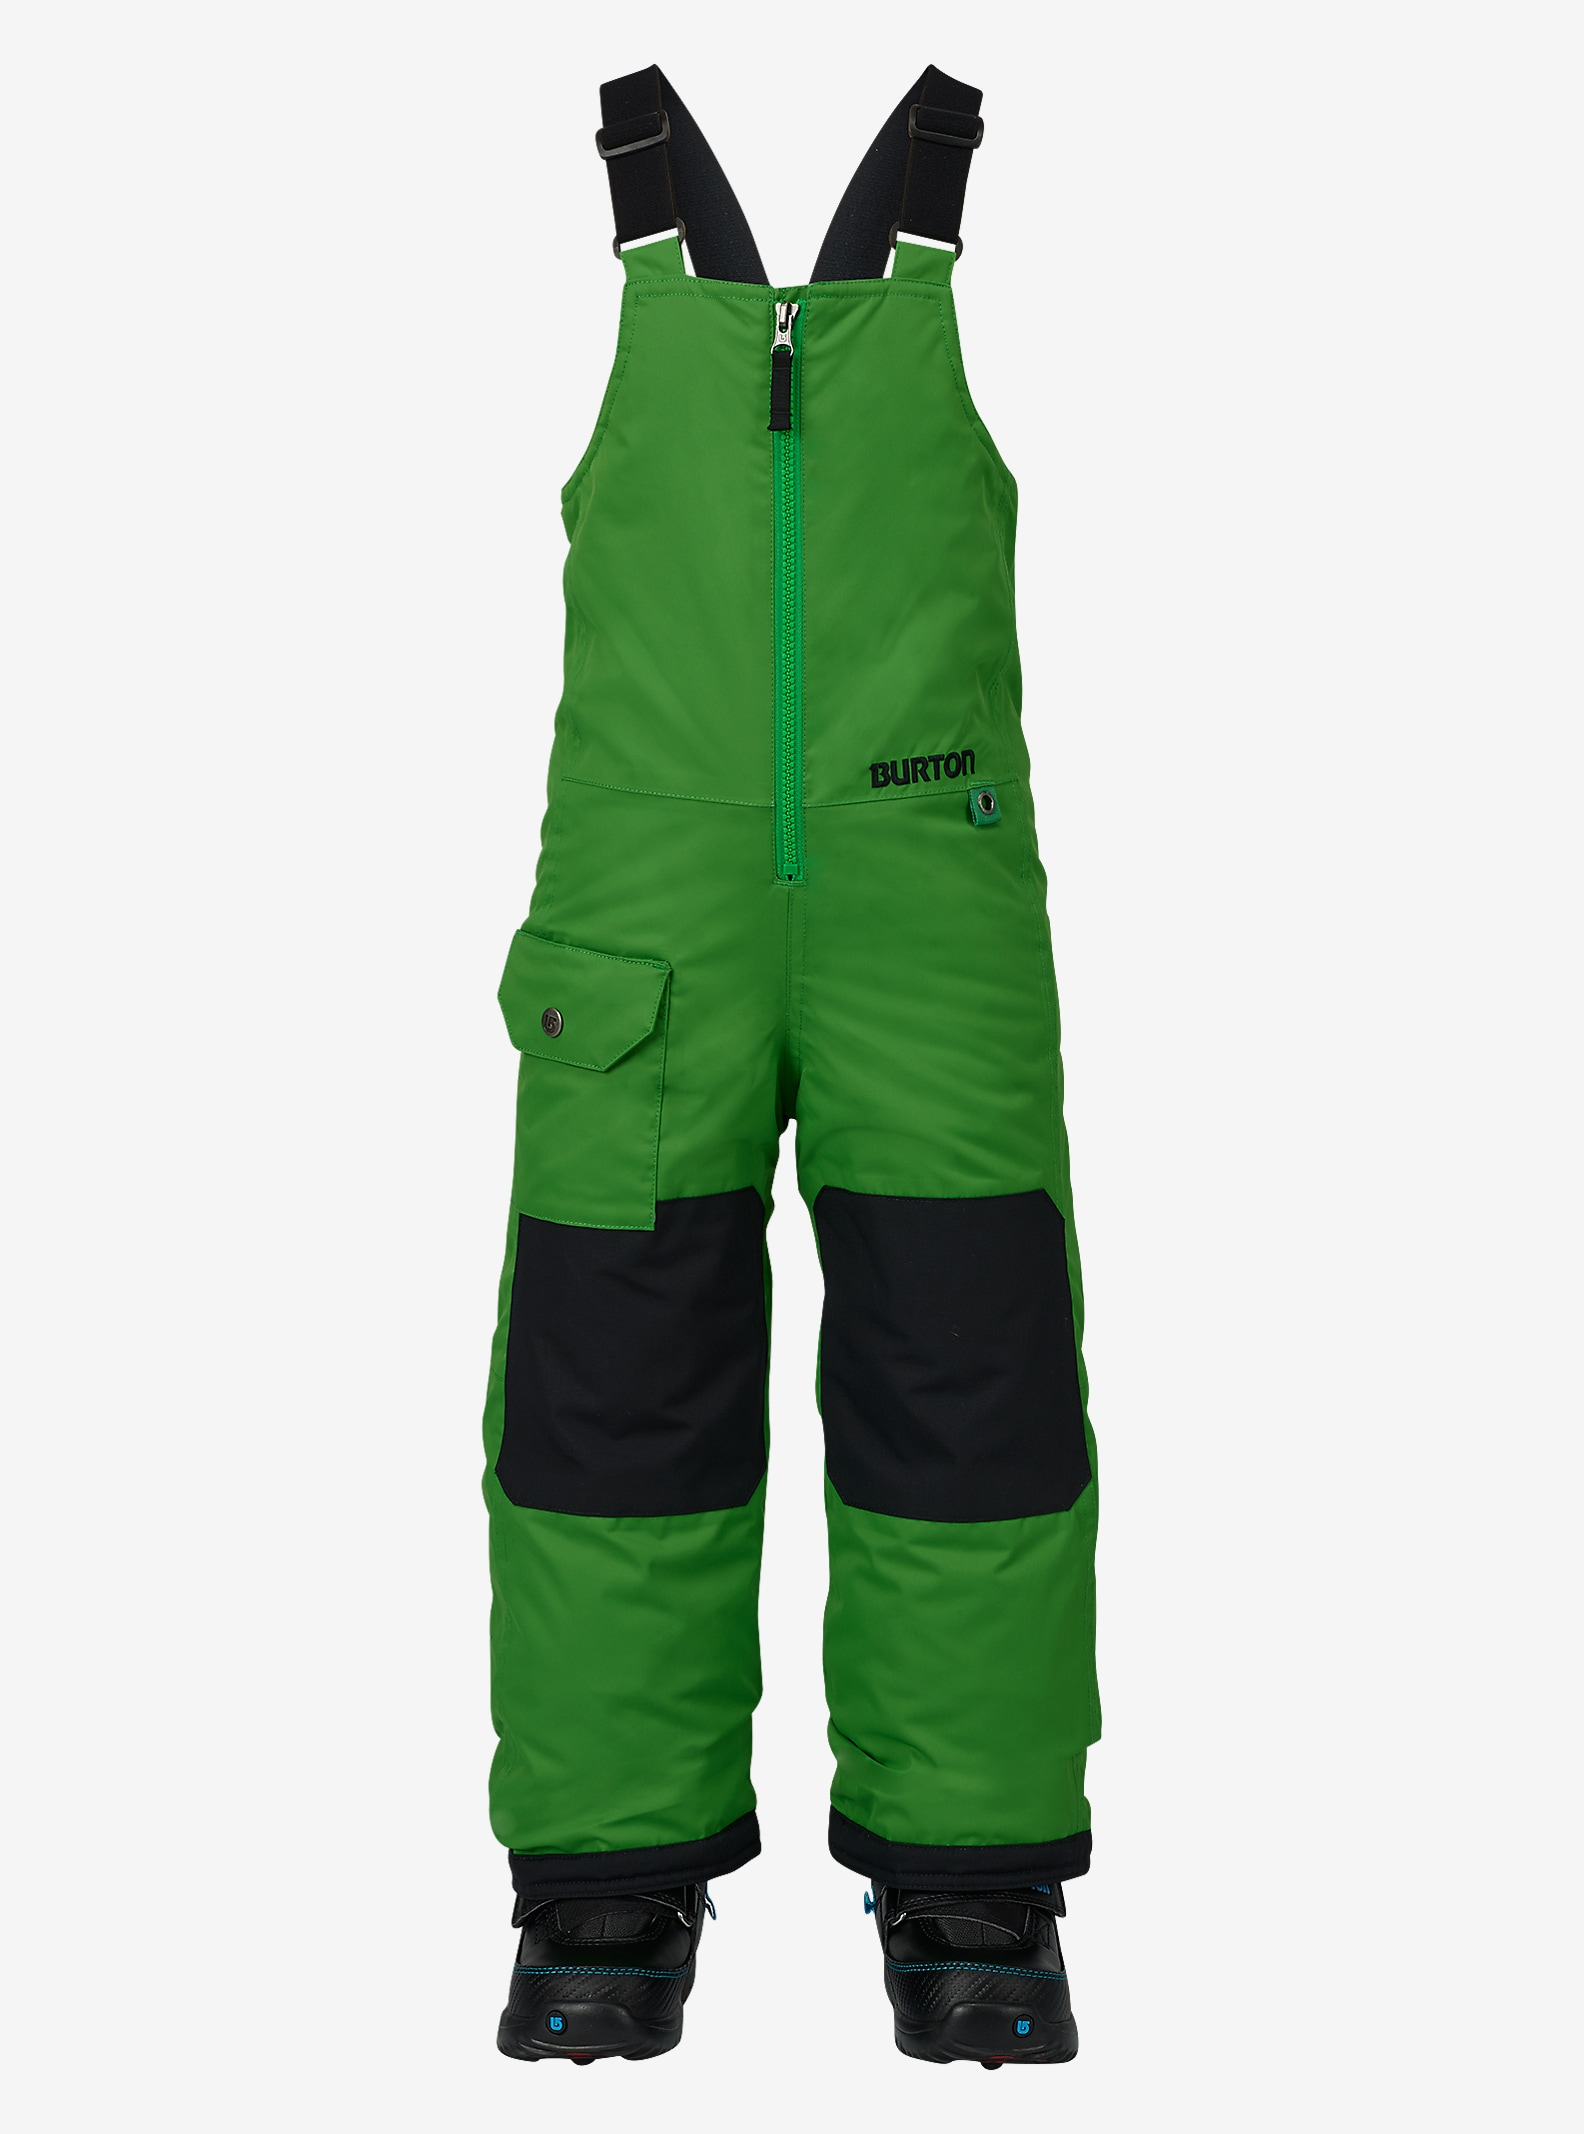 Burton Kids' Minishred Maven Bib Pant shown in Slime